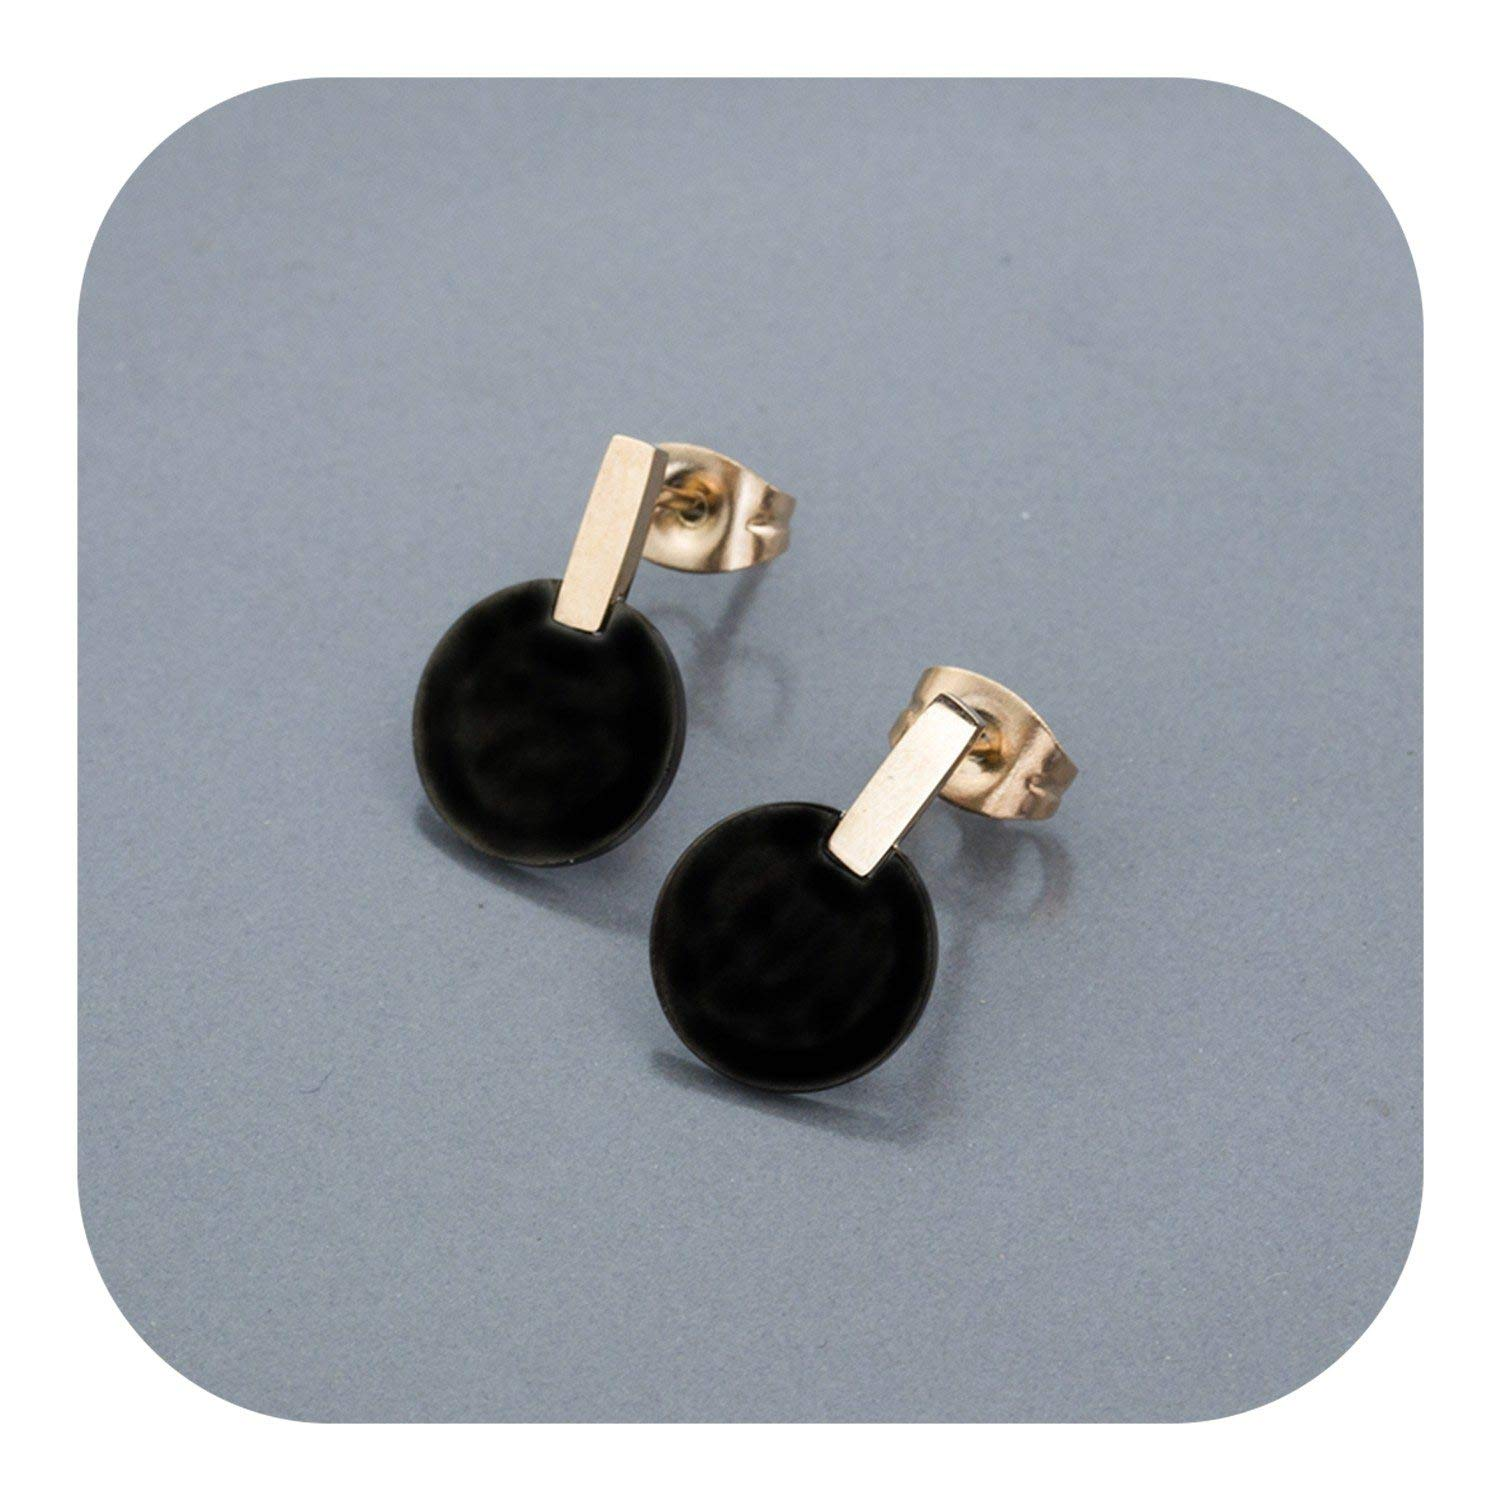 Elegant Black Stud Earrings Rose Gold Color Round Stainless Steel Statement Earrings For Women Girls Party Jewelry Brincos